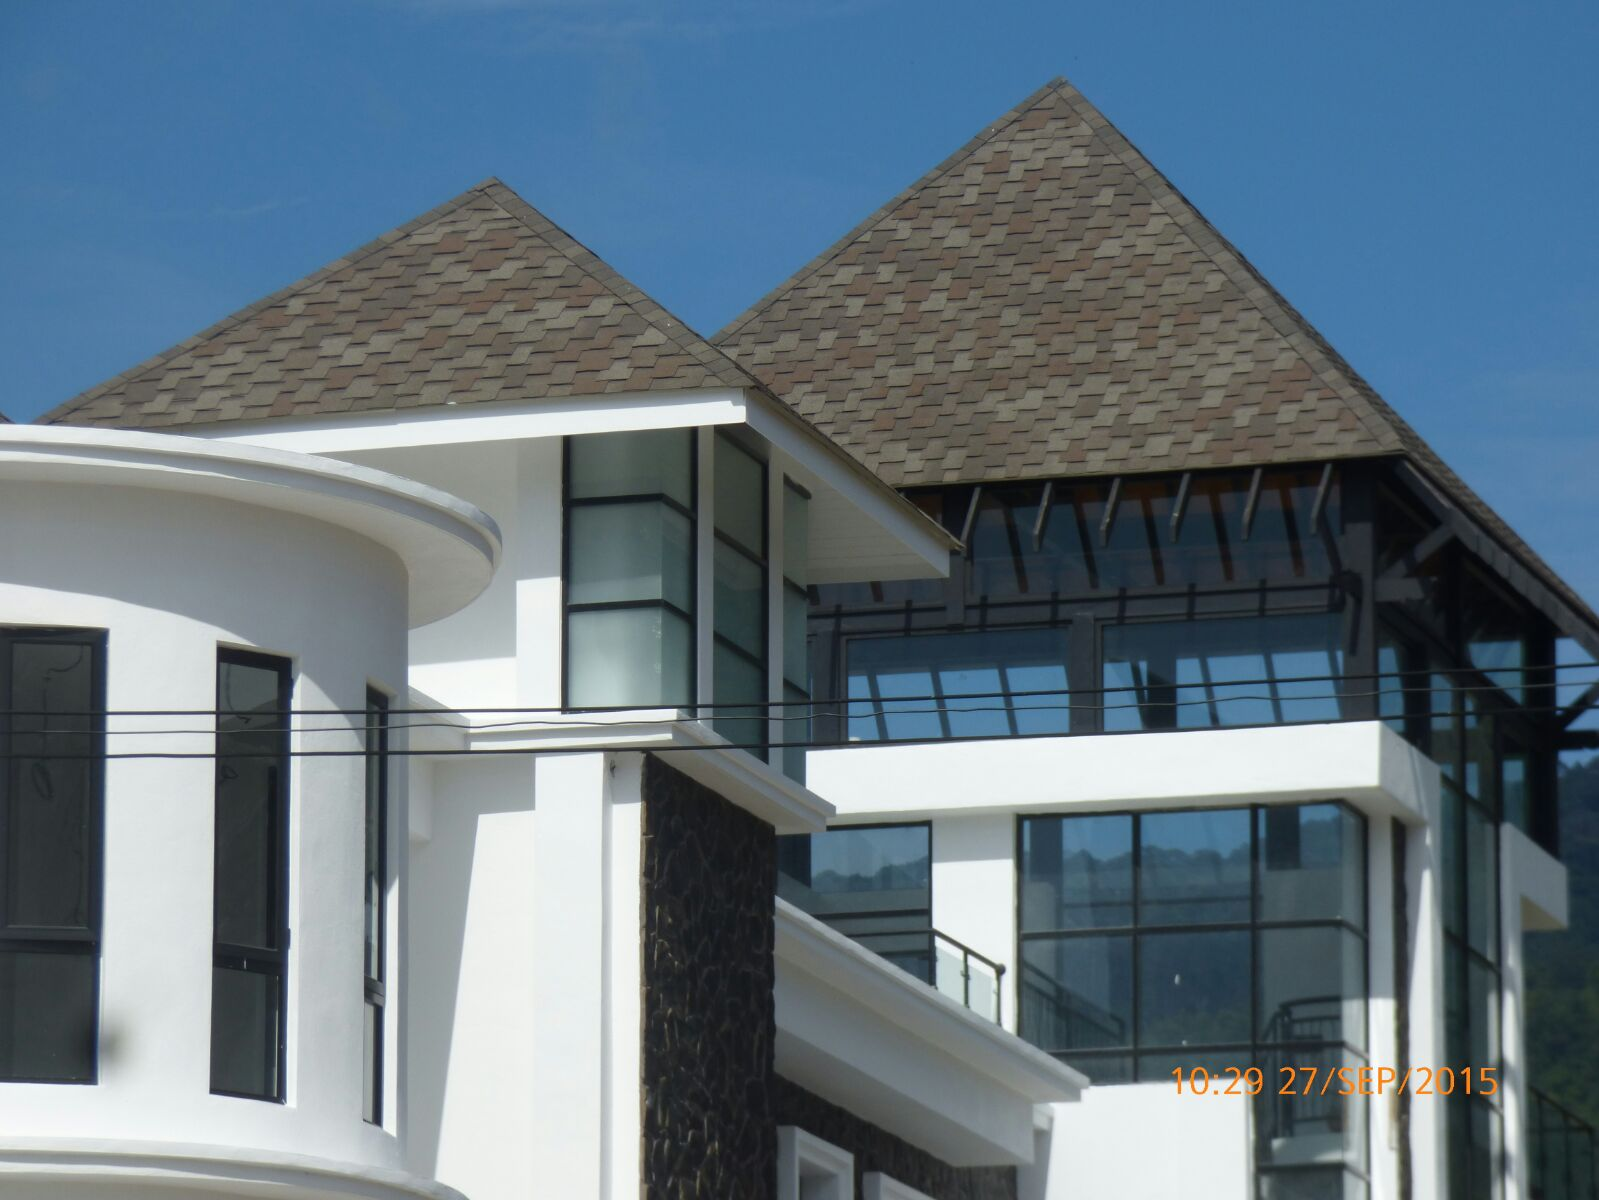 Roof Shingle Driffwood Bungalow Air Itam Penang